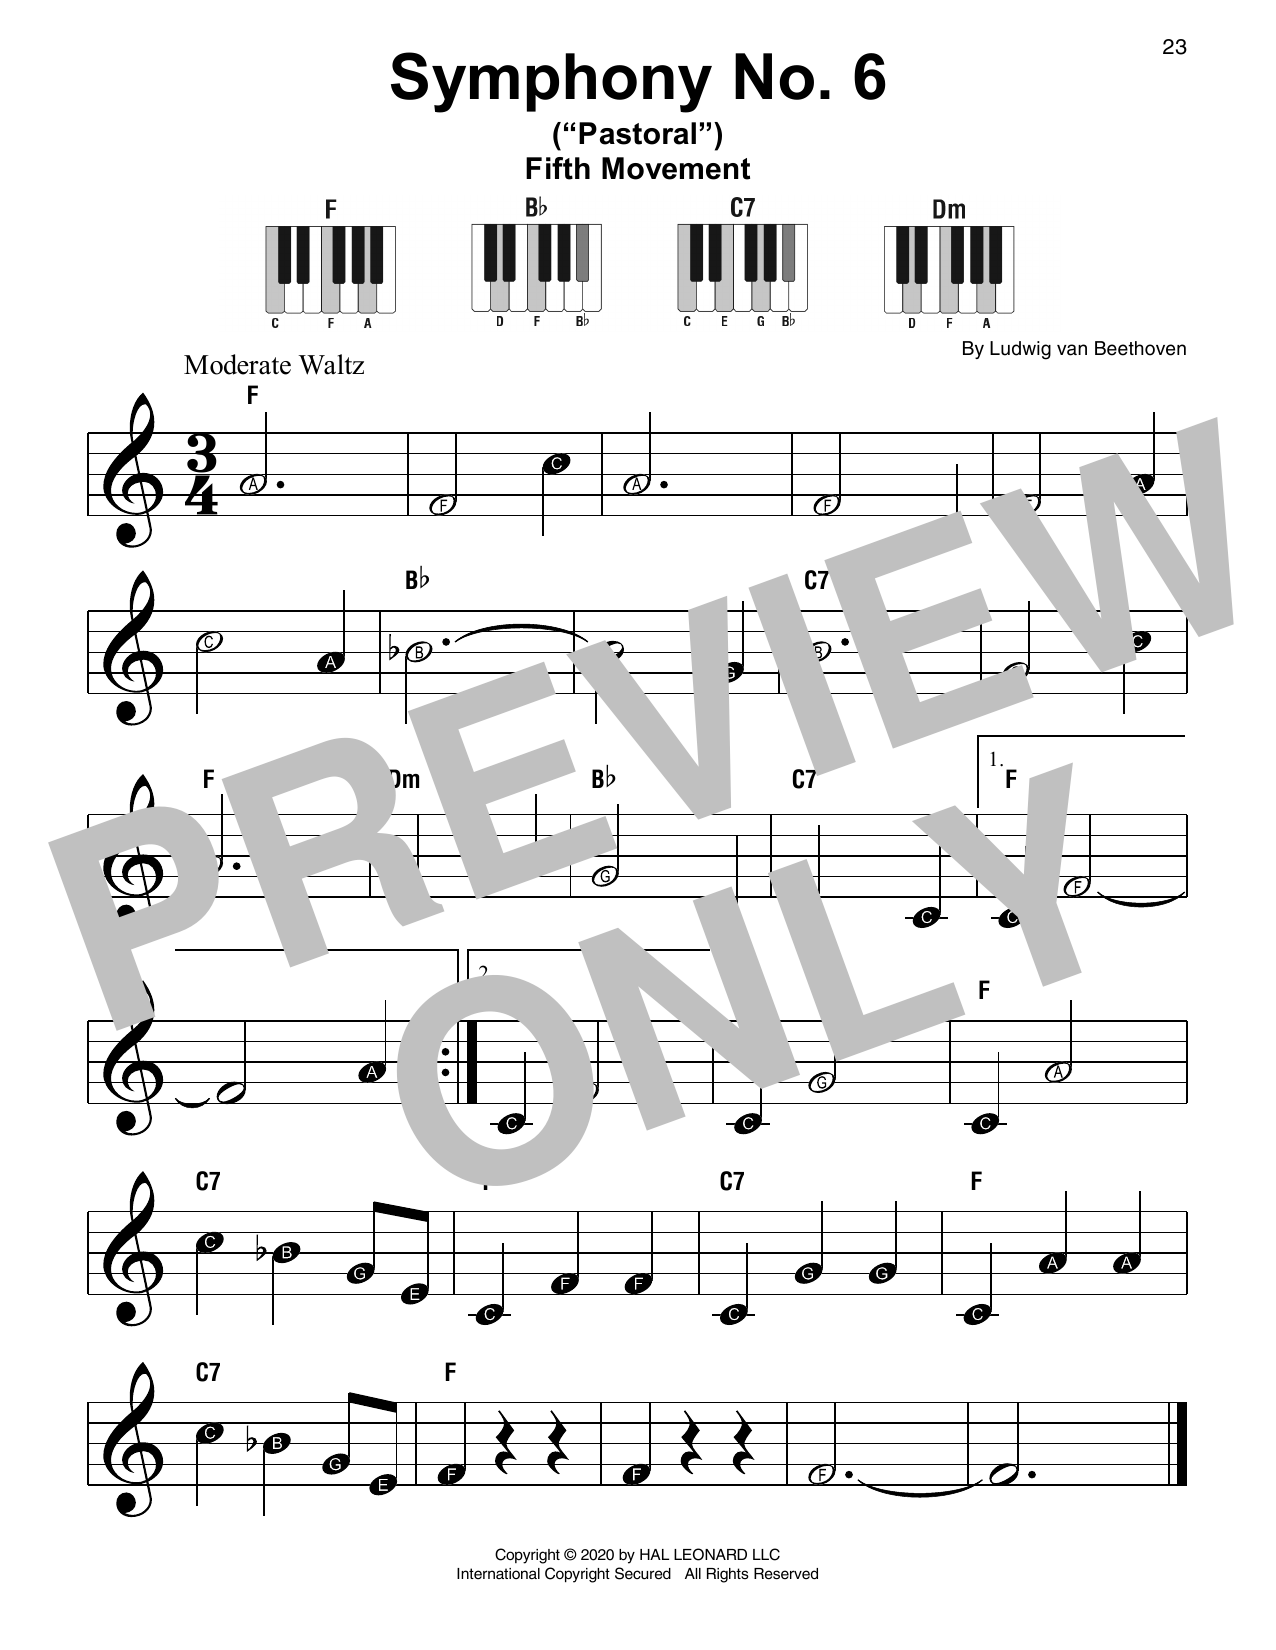 "Symphony No. 6 In F Major (""Pastoral""), First Movement Excerpt Sheet Music"